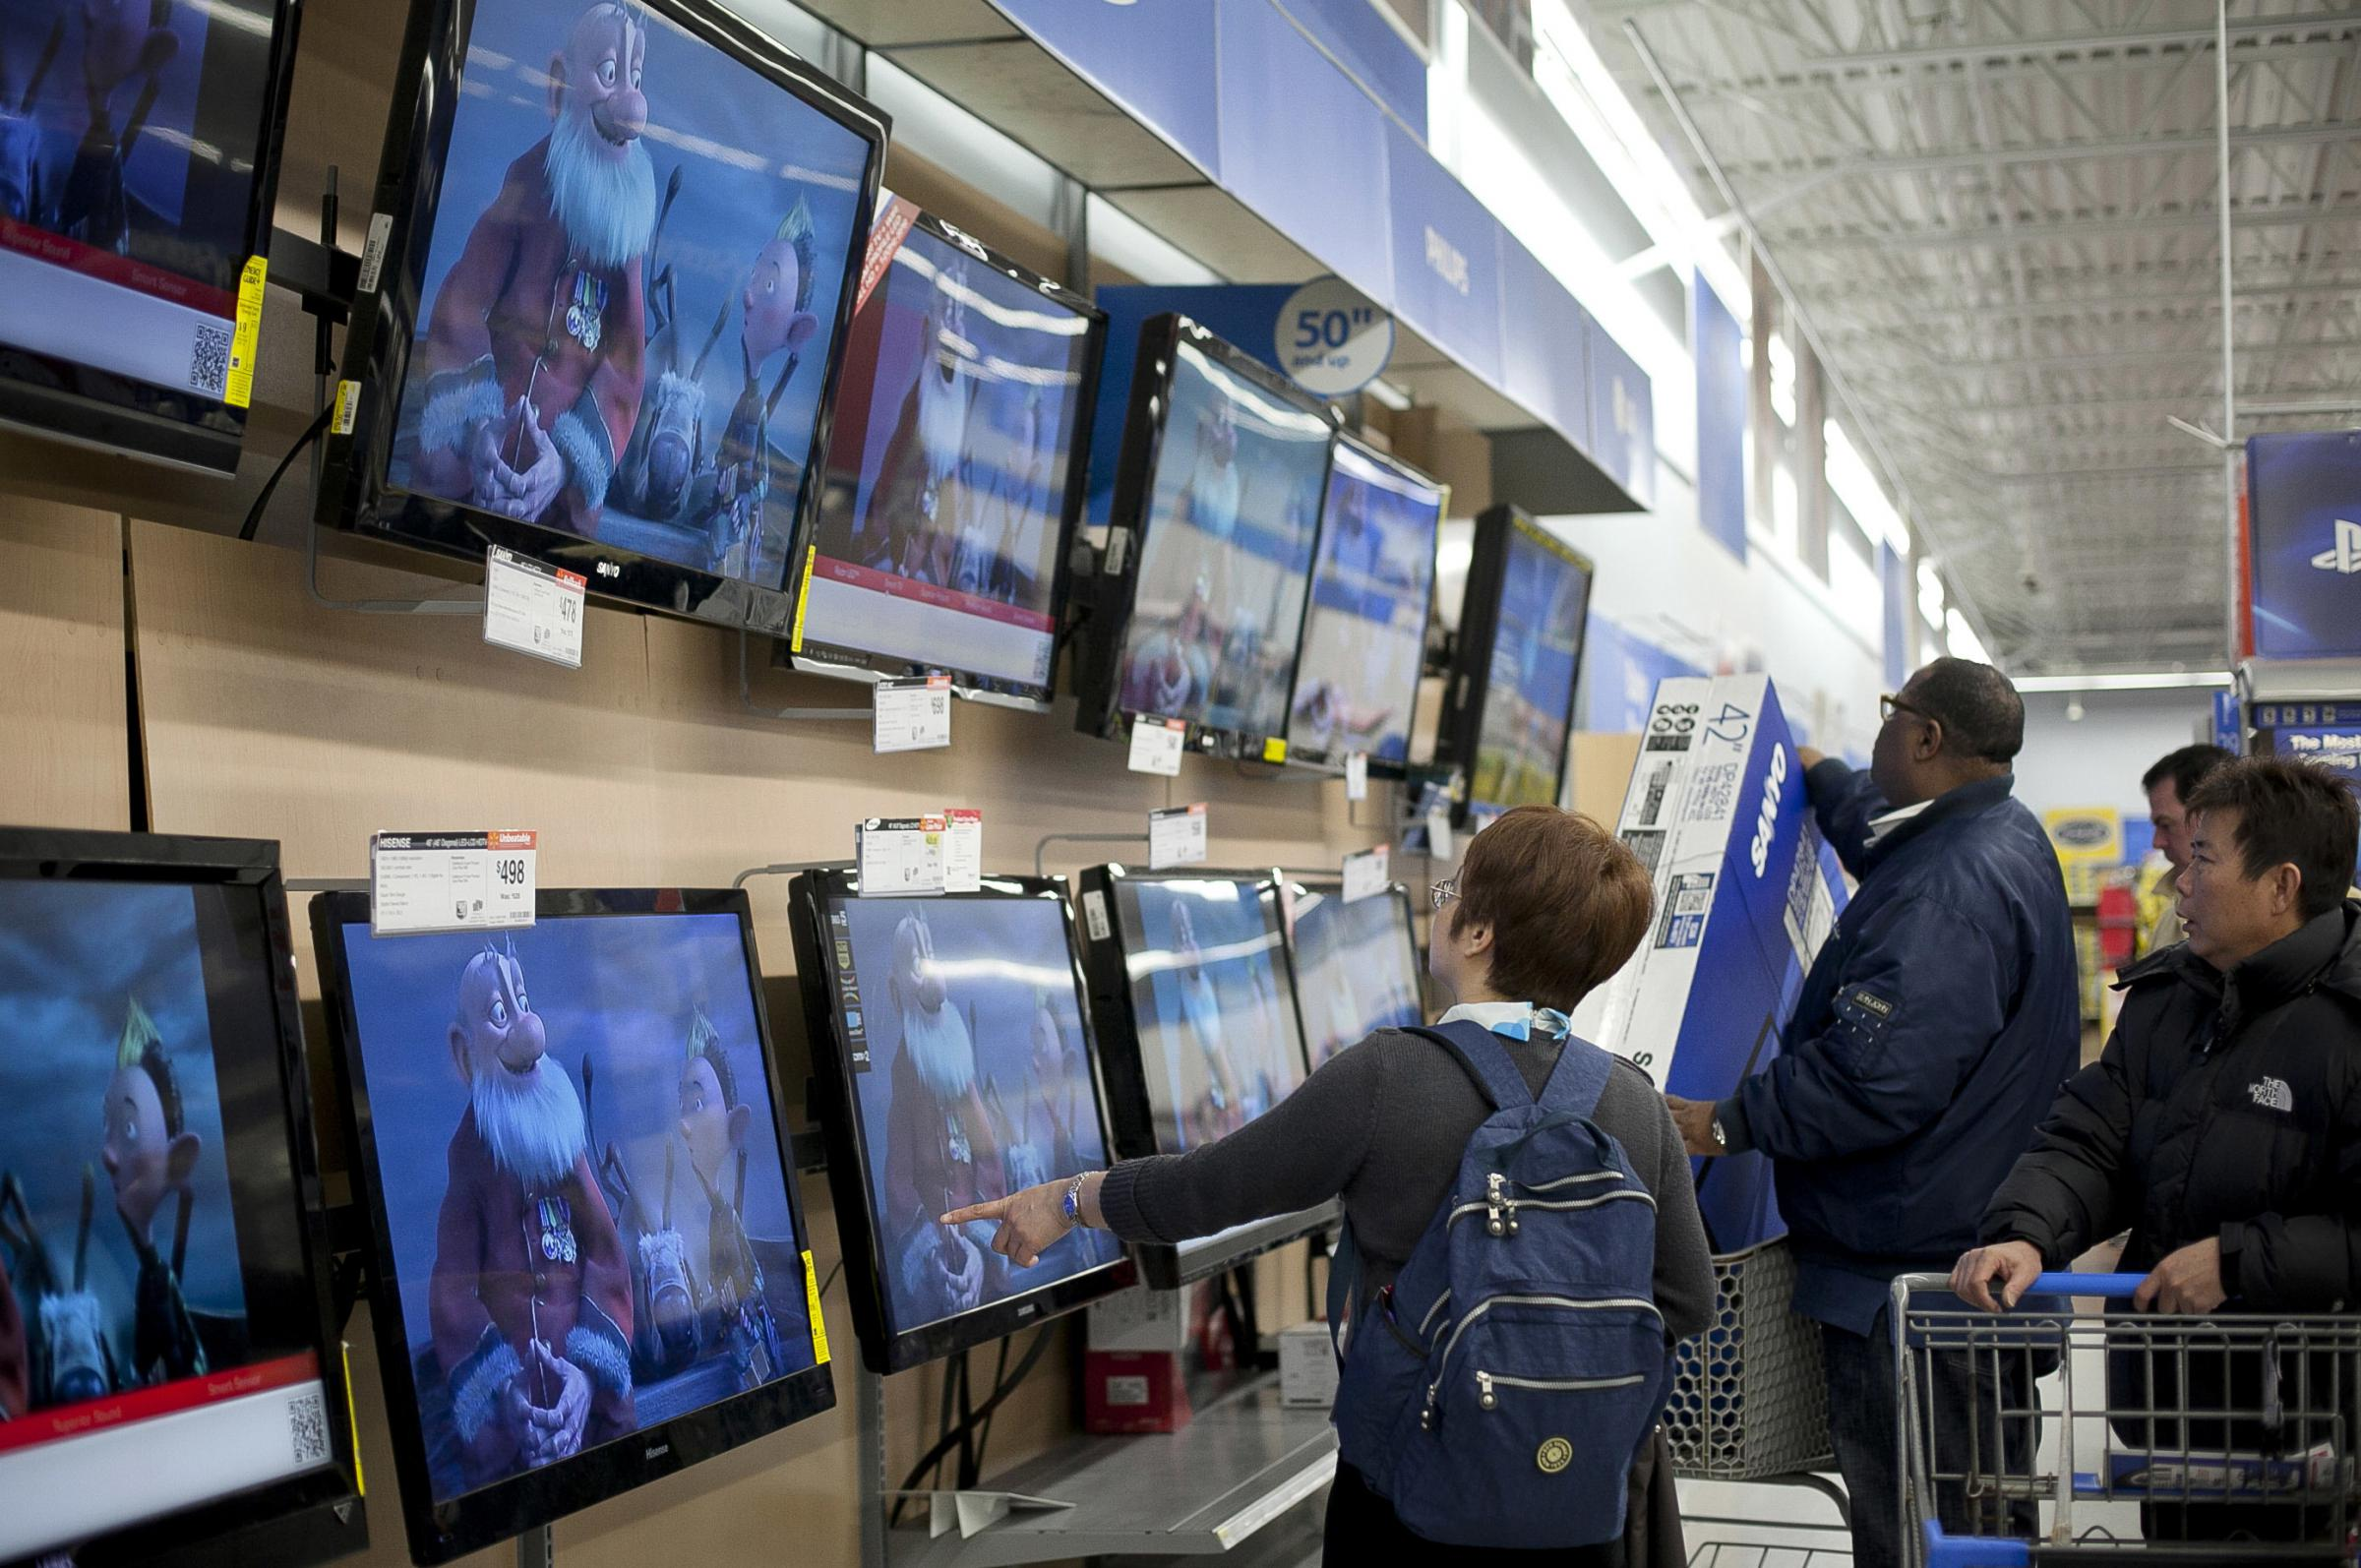 Shoppers look at televisions at a Walmart during Black Friday sales in 2012 in Quincy Mass